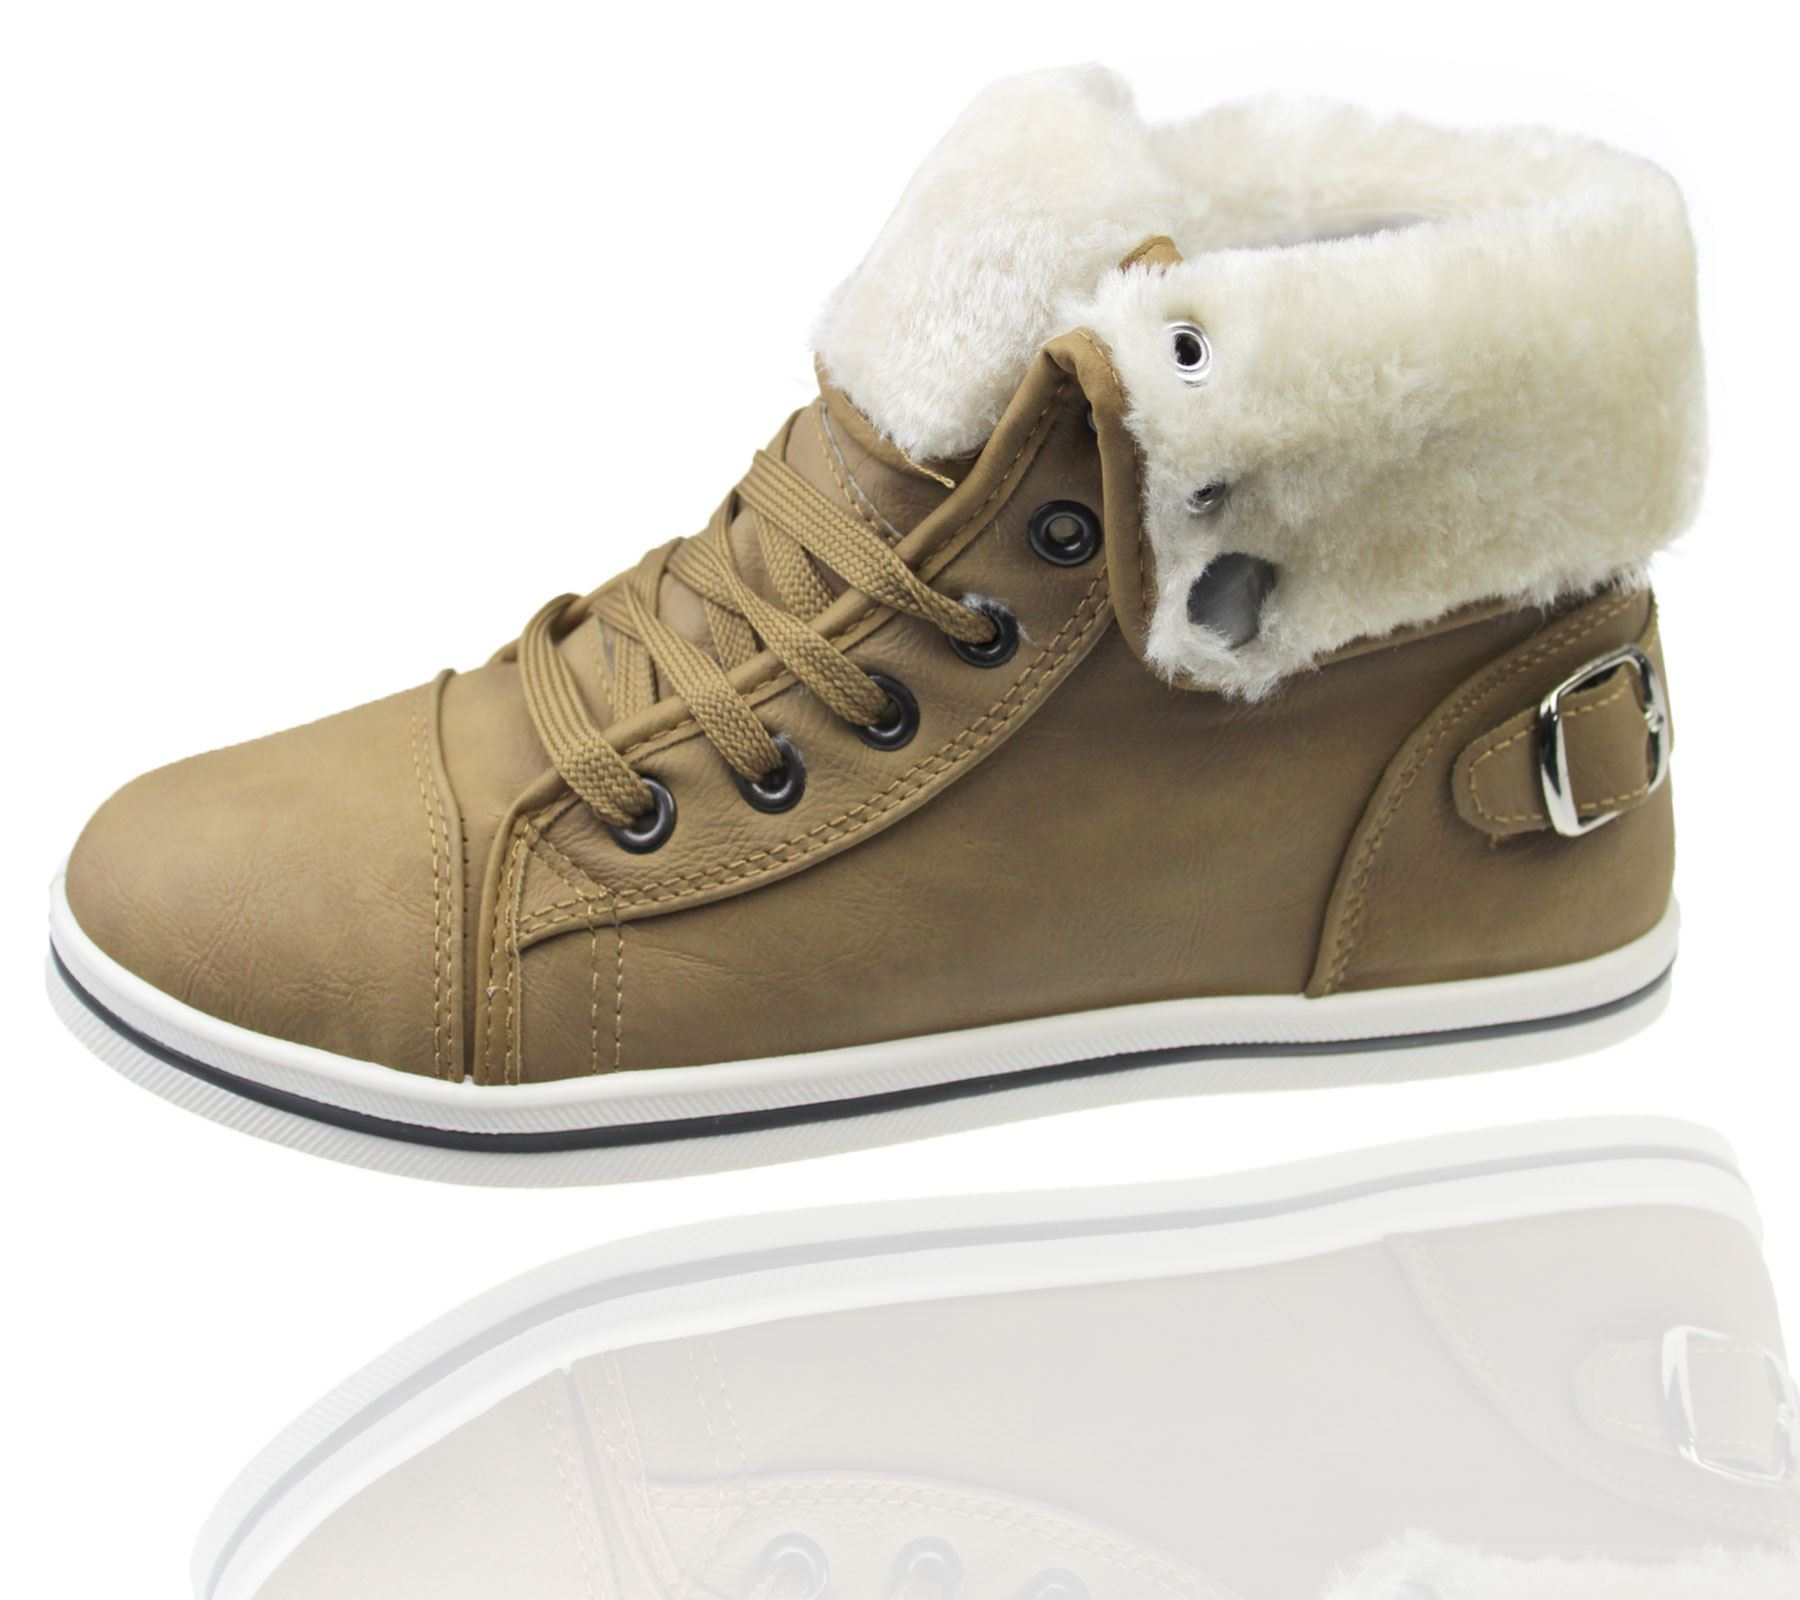 Girls-Boots-Womens-Warm-Lined-High-Top-Ankle-Trainer-Ladies-Winter-Shoes-Size miniatura 107